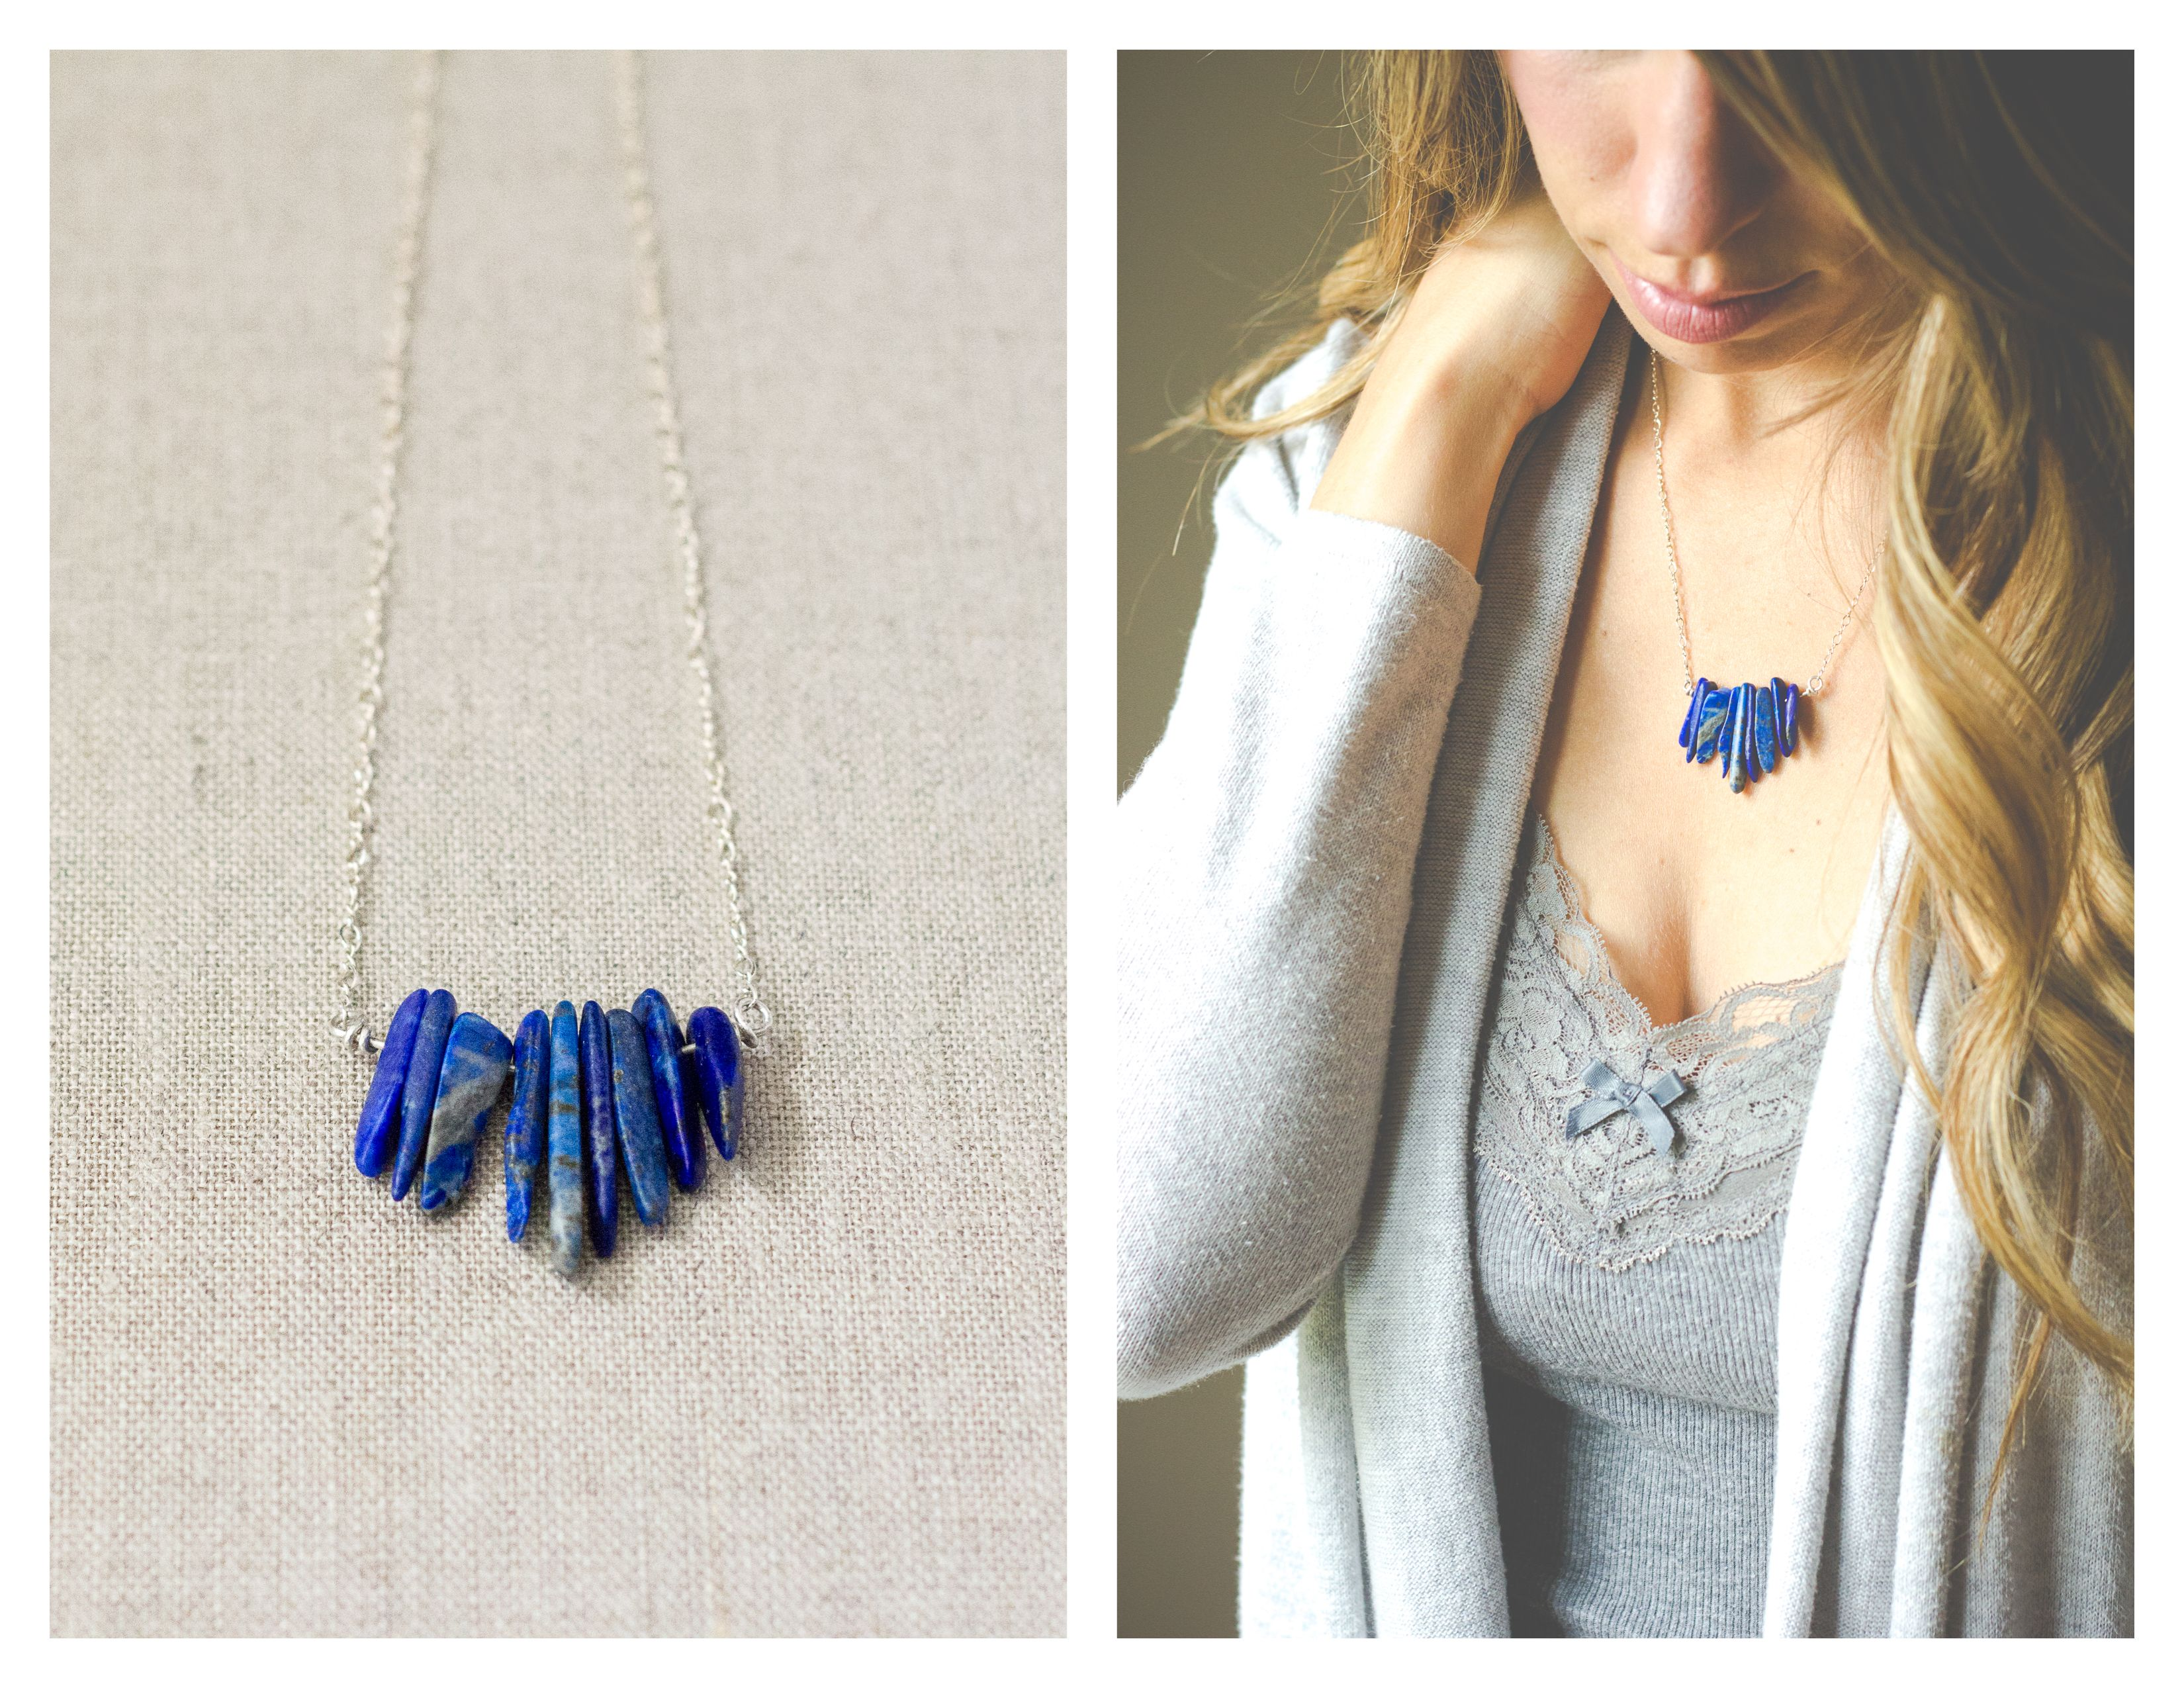 Small Lapis Bib Necklace by Wandering Root  https://www.etsy.com/listing/238608263/small-lapis-bib-necklace?ref=shop_home_active_5